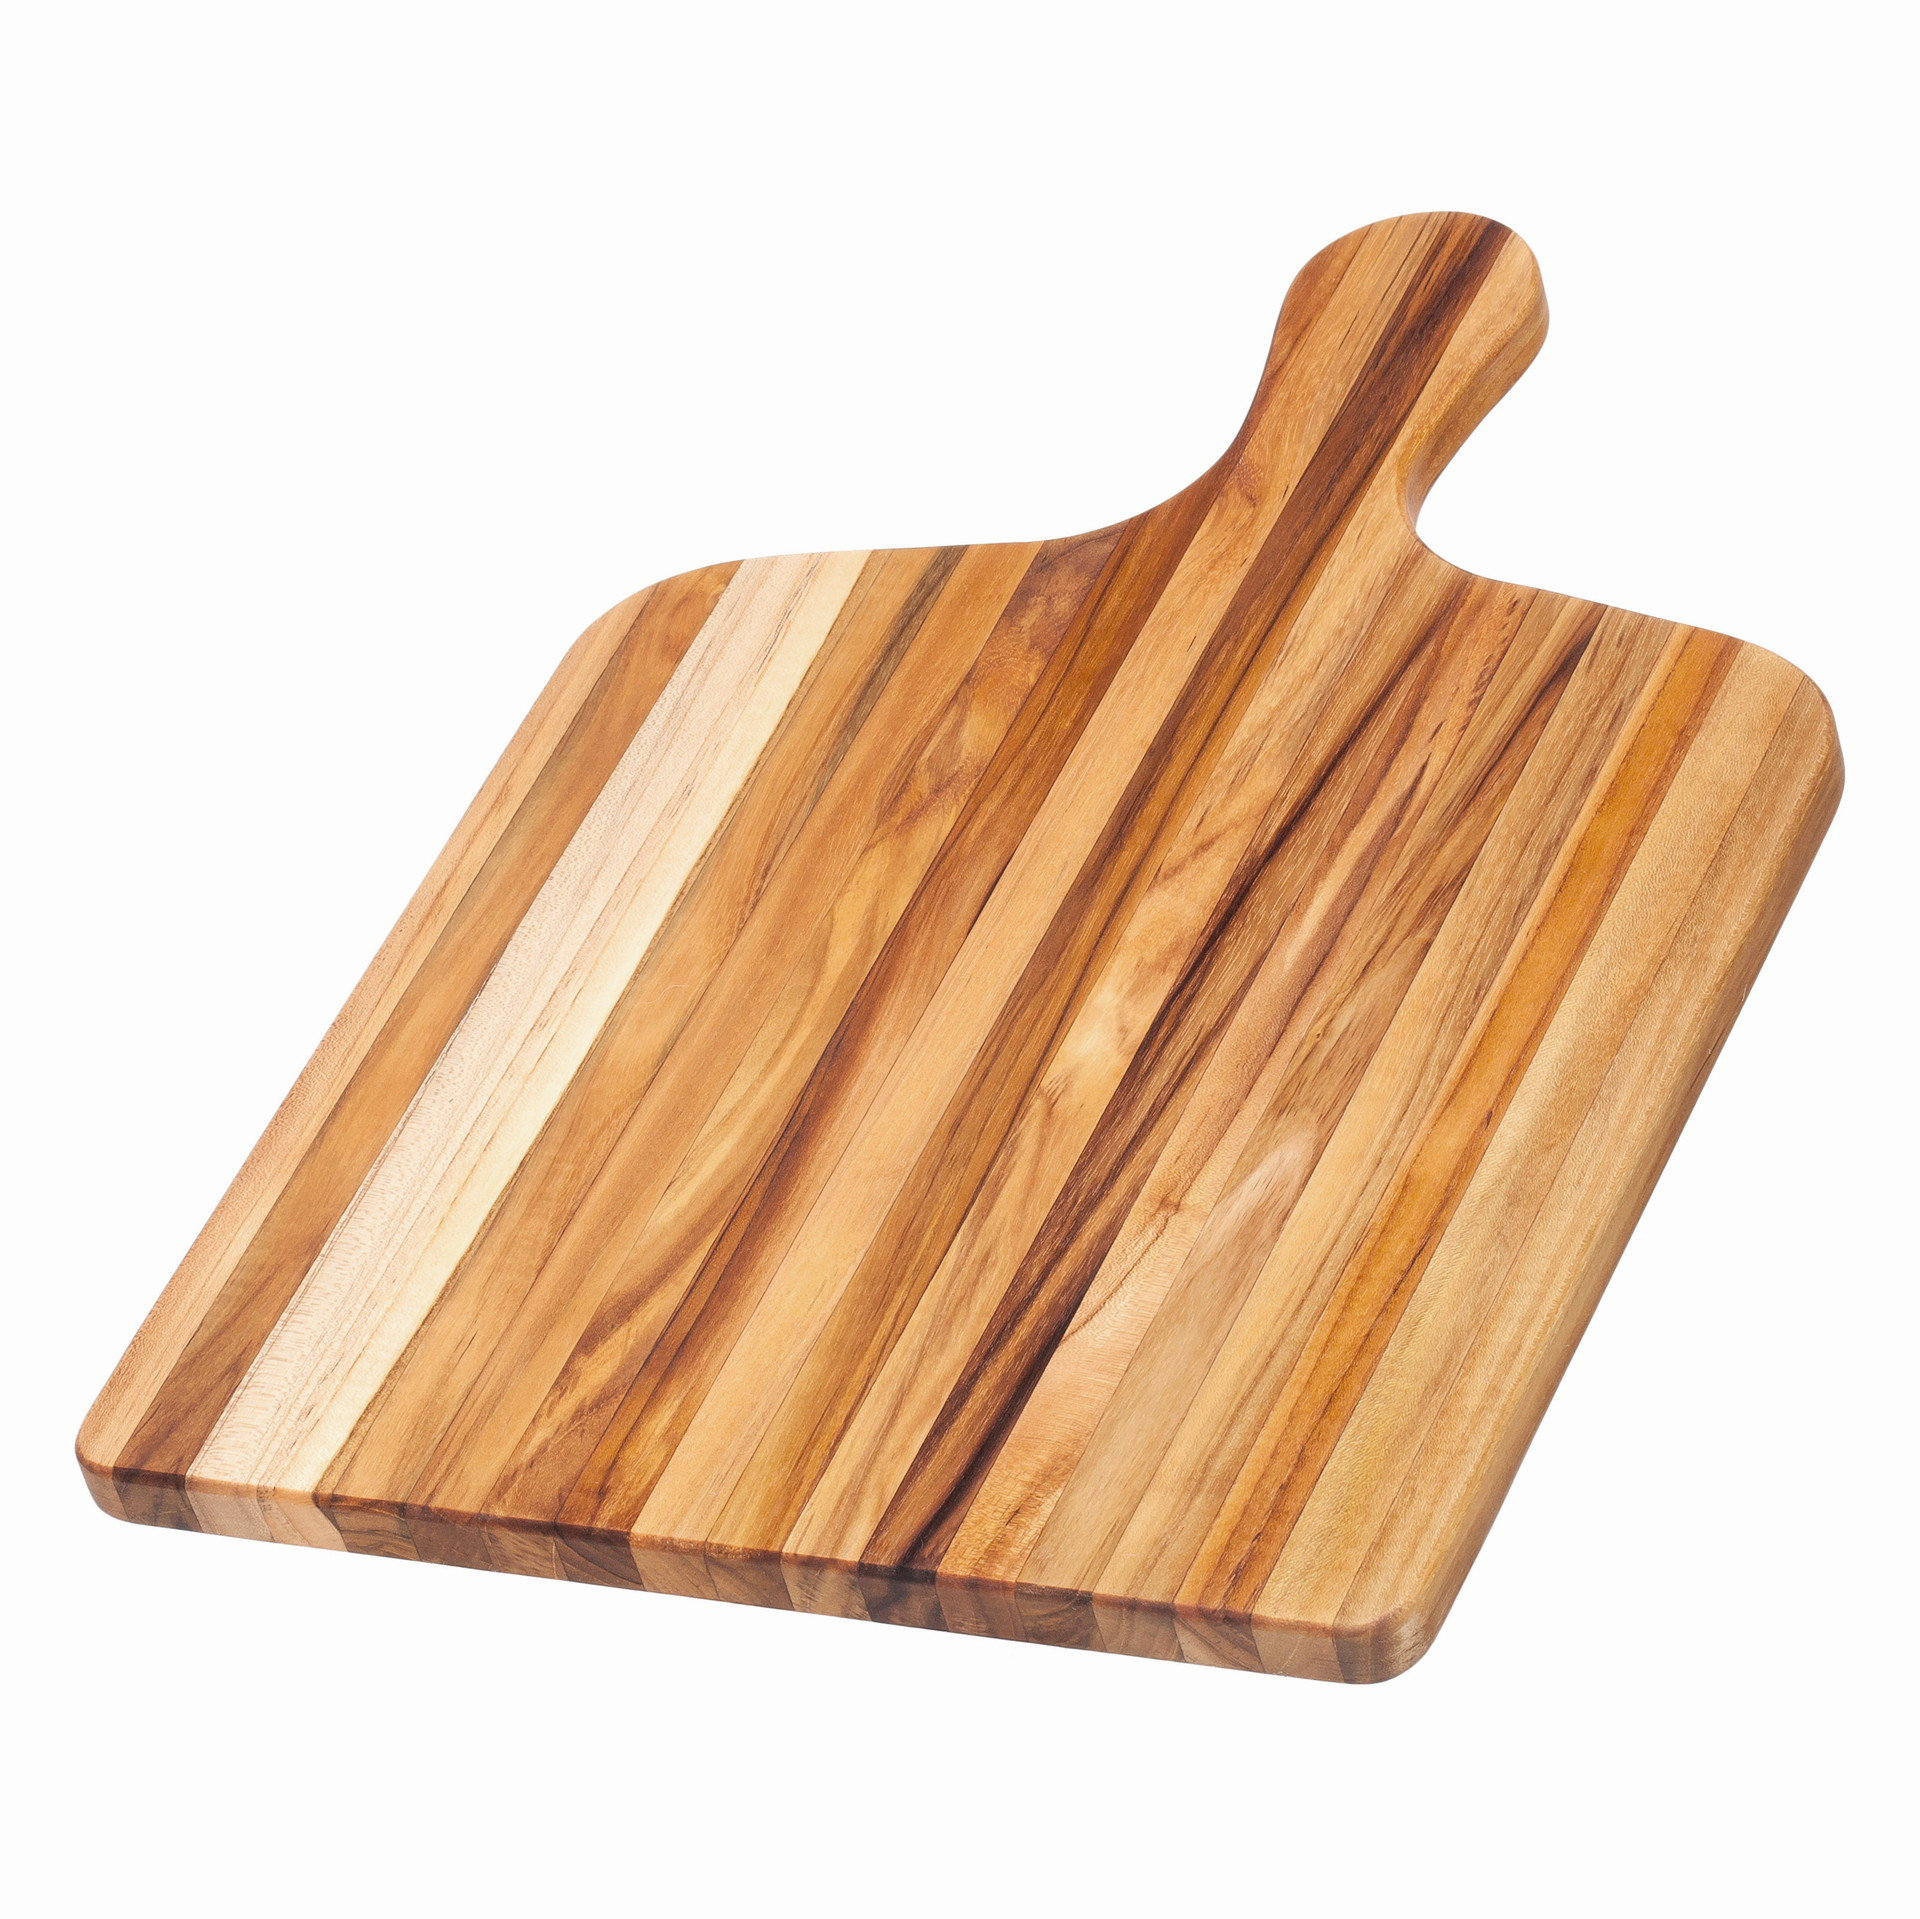 Teak Haus Edge Grain Marine Collection Boards 519 Gourmet Chopping Board 51x35,5x1,9